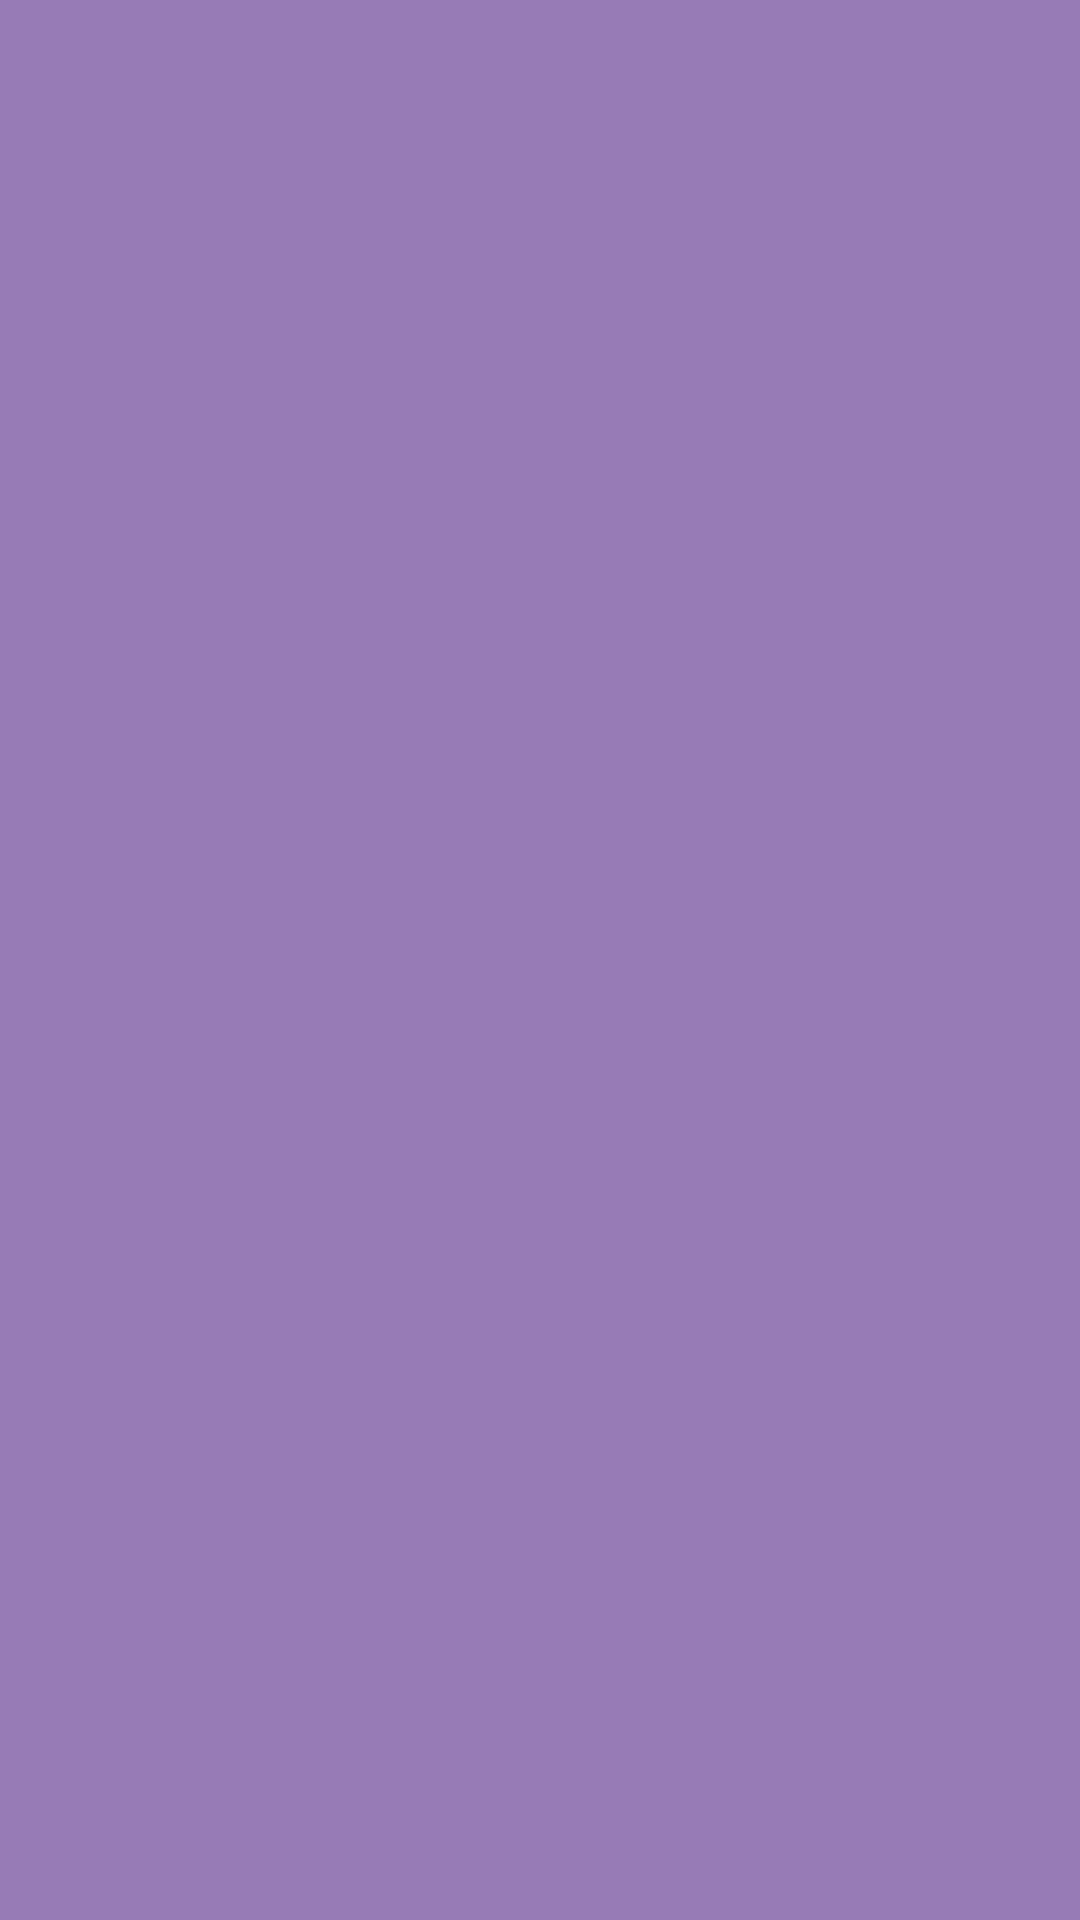 1080x1920 Lavender Purple Solid Color Background